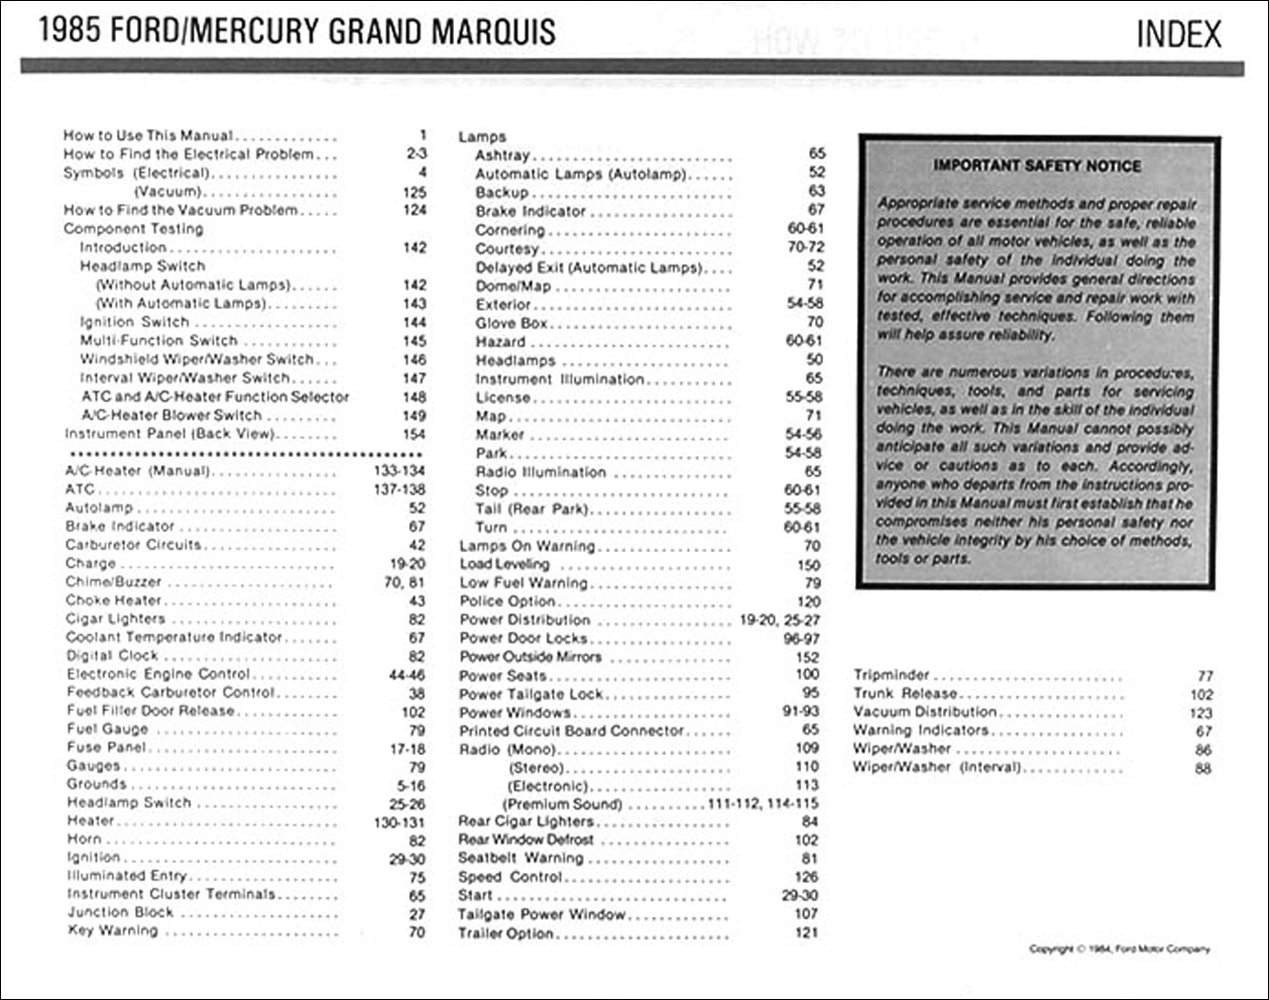 1985 Crown Victoria Grand Marquis Electrical Troubleshooting Manual Wiring Diagram Table Of Contents